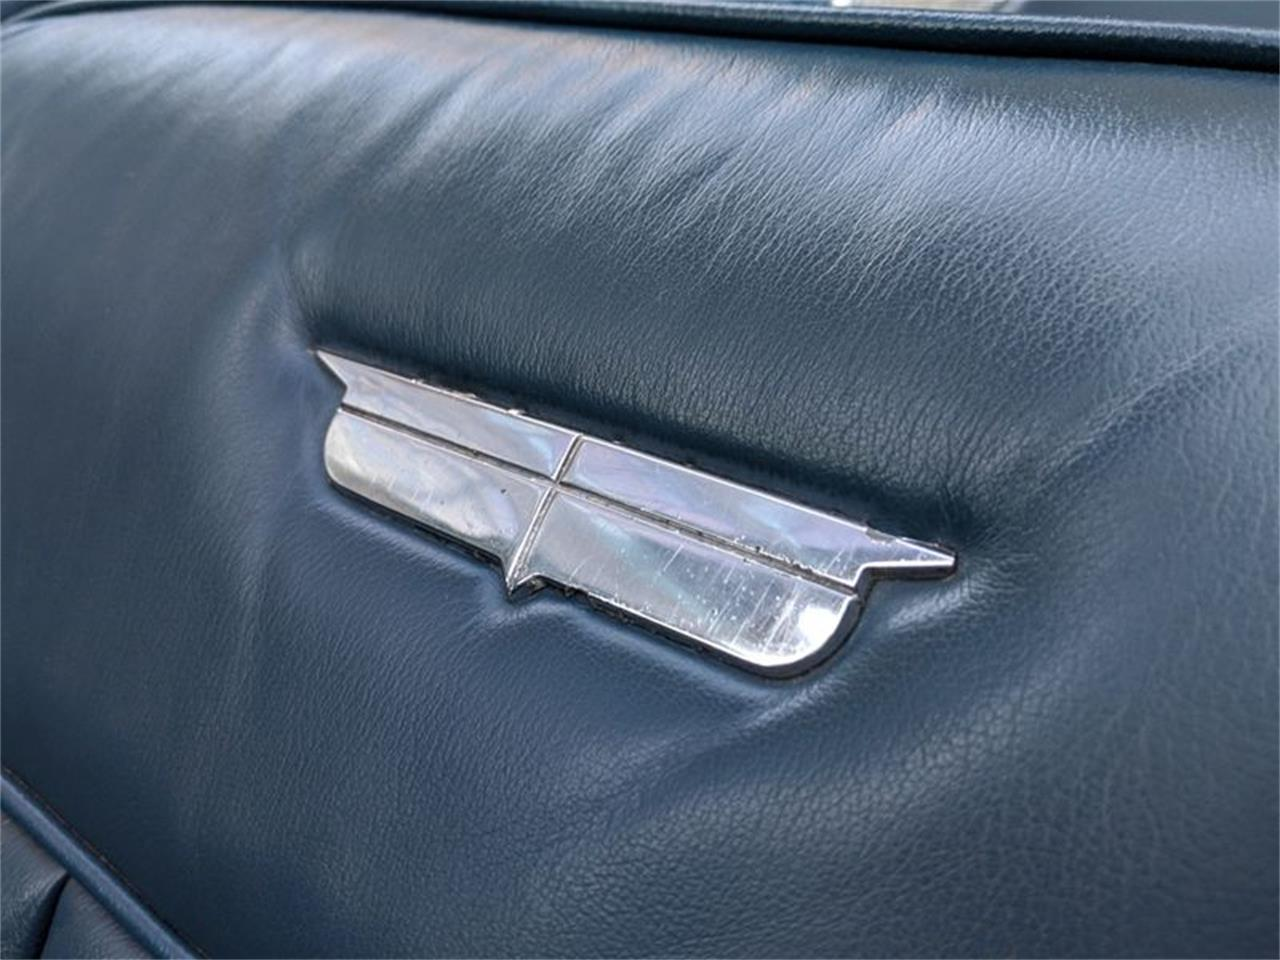 Large Picture of Classic 1957 Cadillac Eldorado Biarritz located in TACOMA Washington Auction Vehicle - QQVD